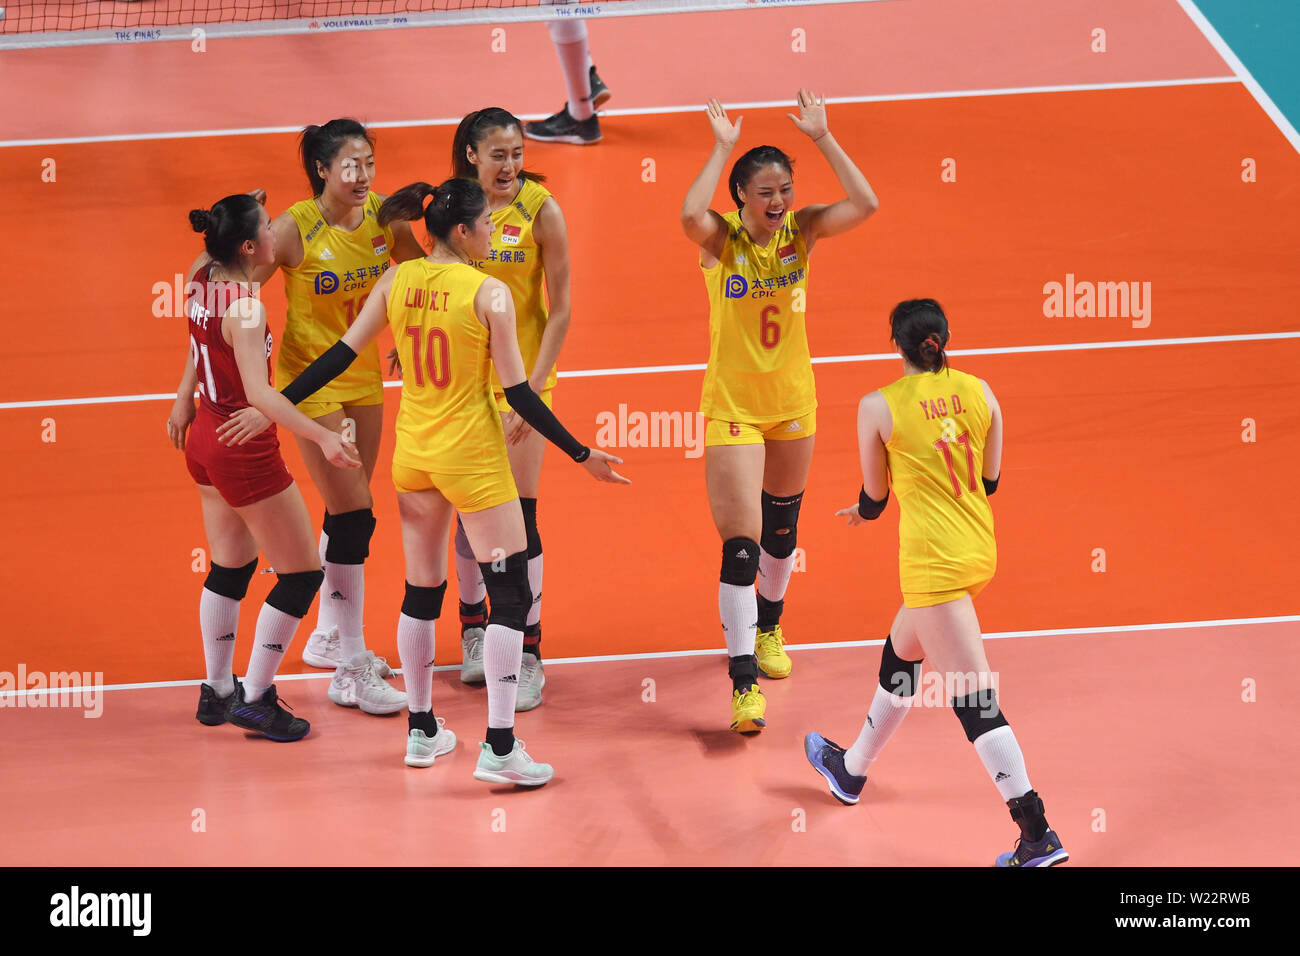 190705) -- NANJING, July 5, 2019 (Xinhua) -- Players of China